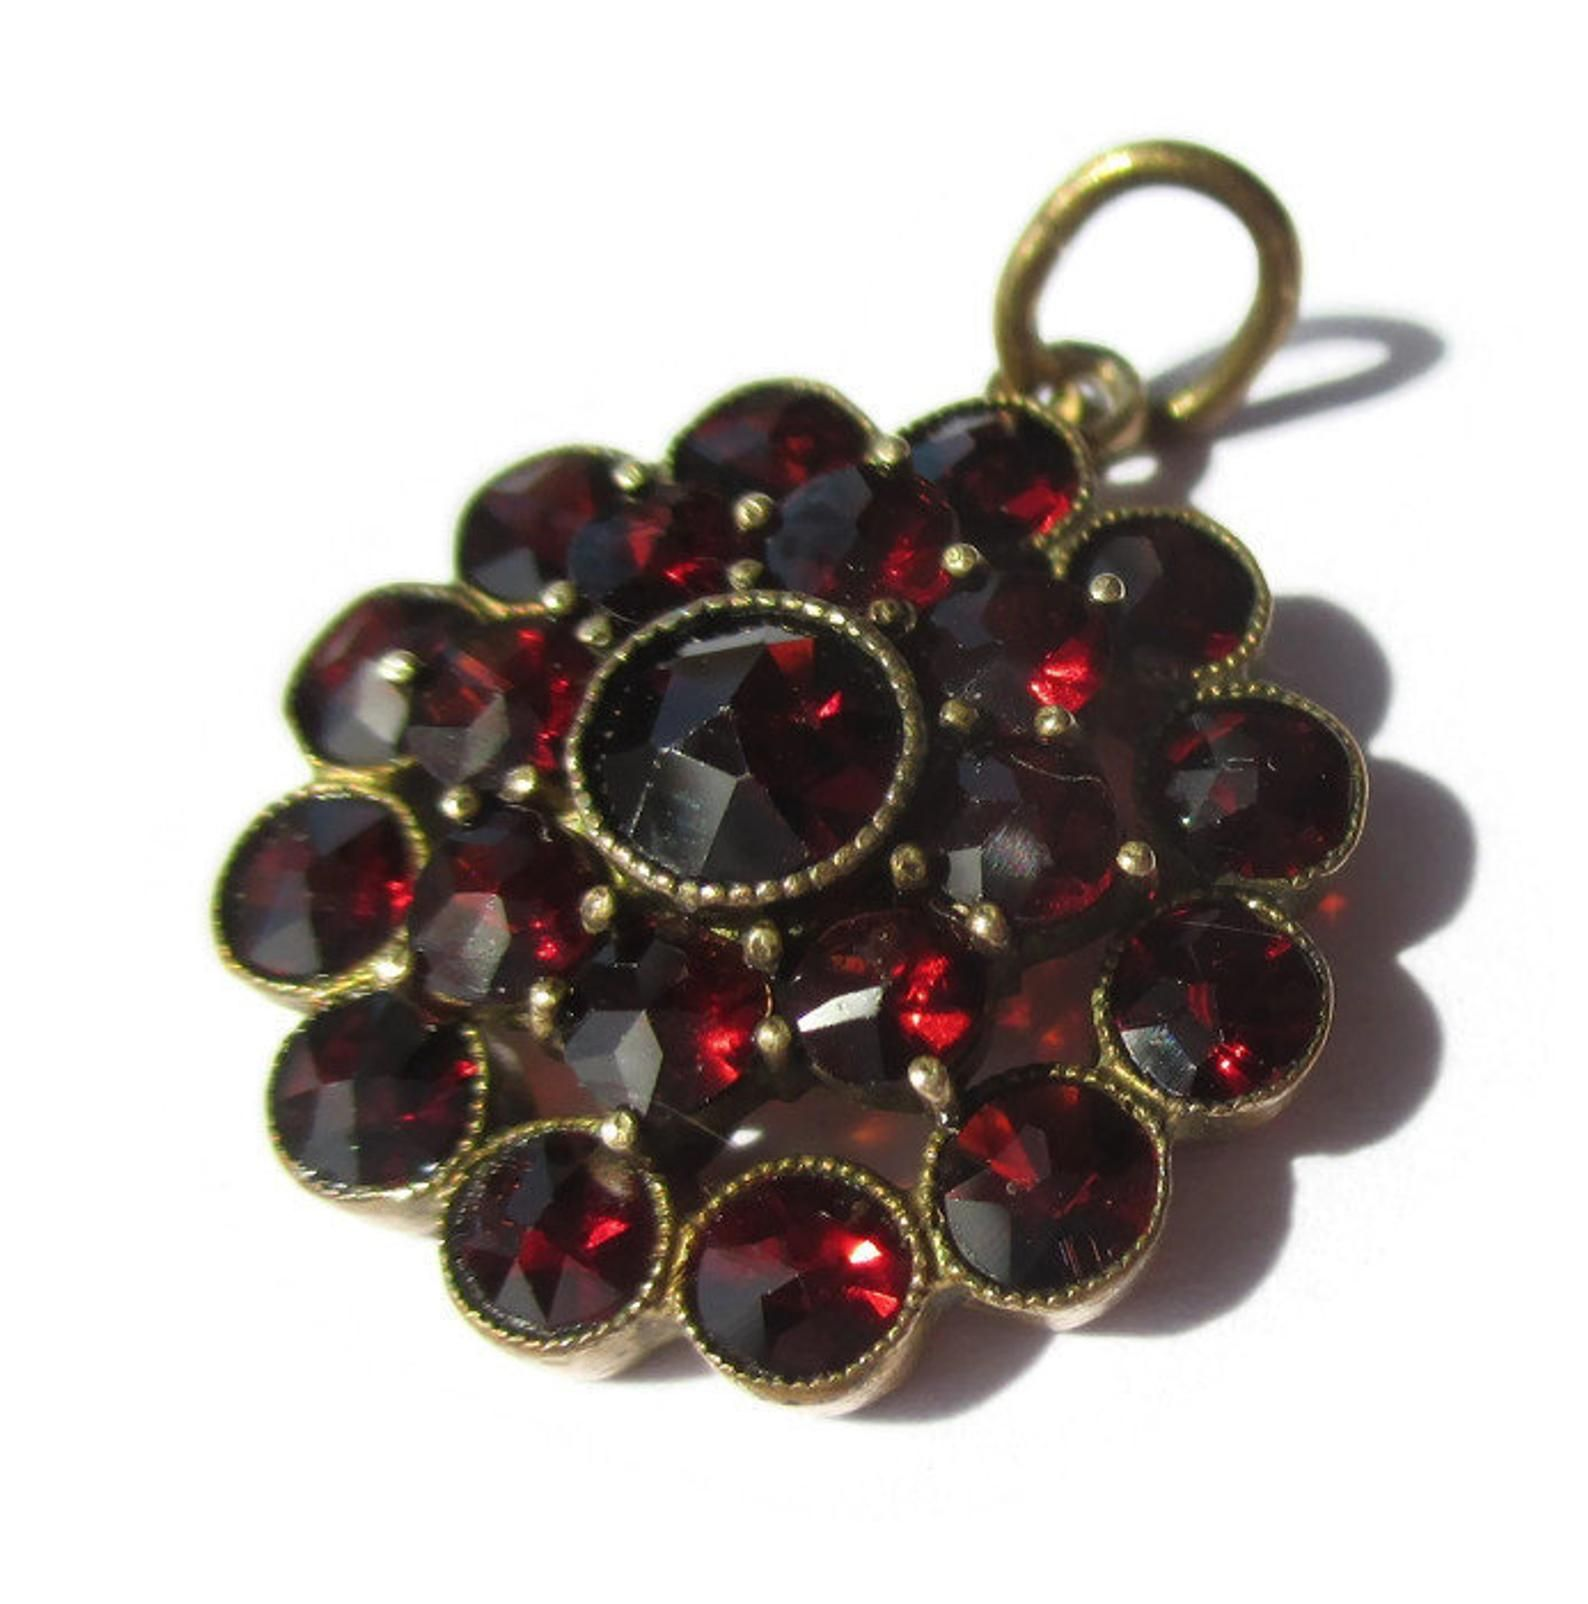 Bohemian garnet pendant vintage Victorian style ruby crimson facetted stones Czech jewellery cluster rose cut red stones necklace dangle